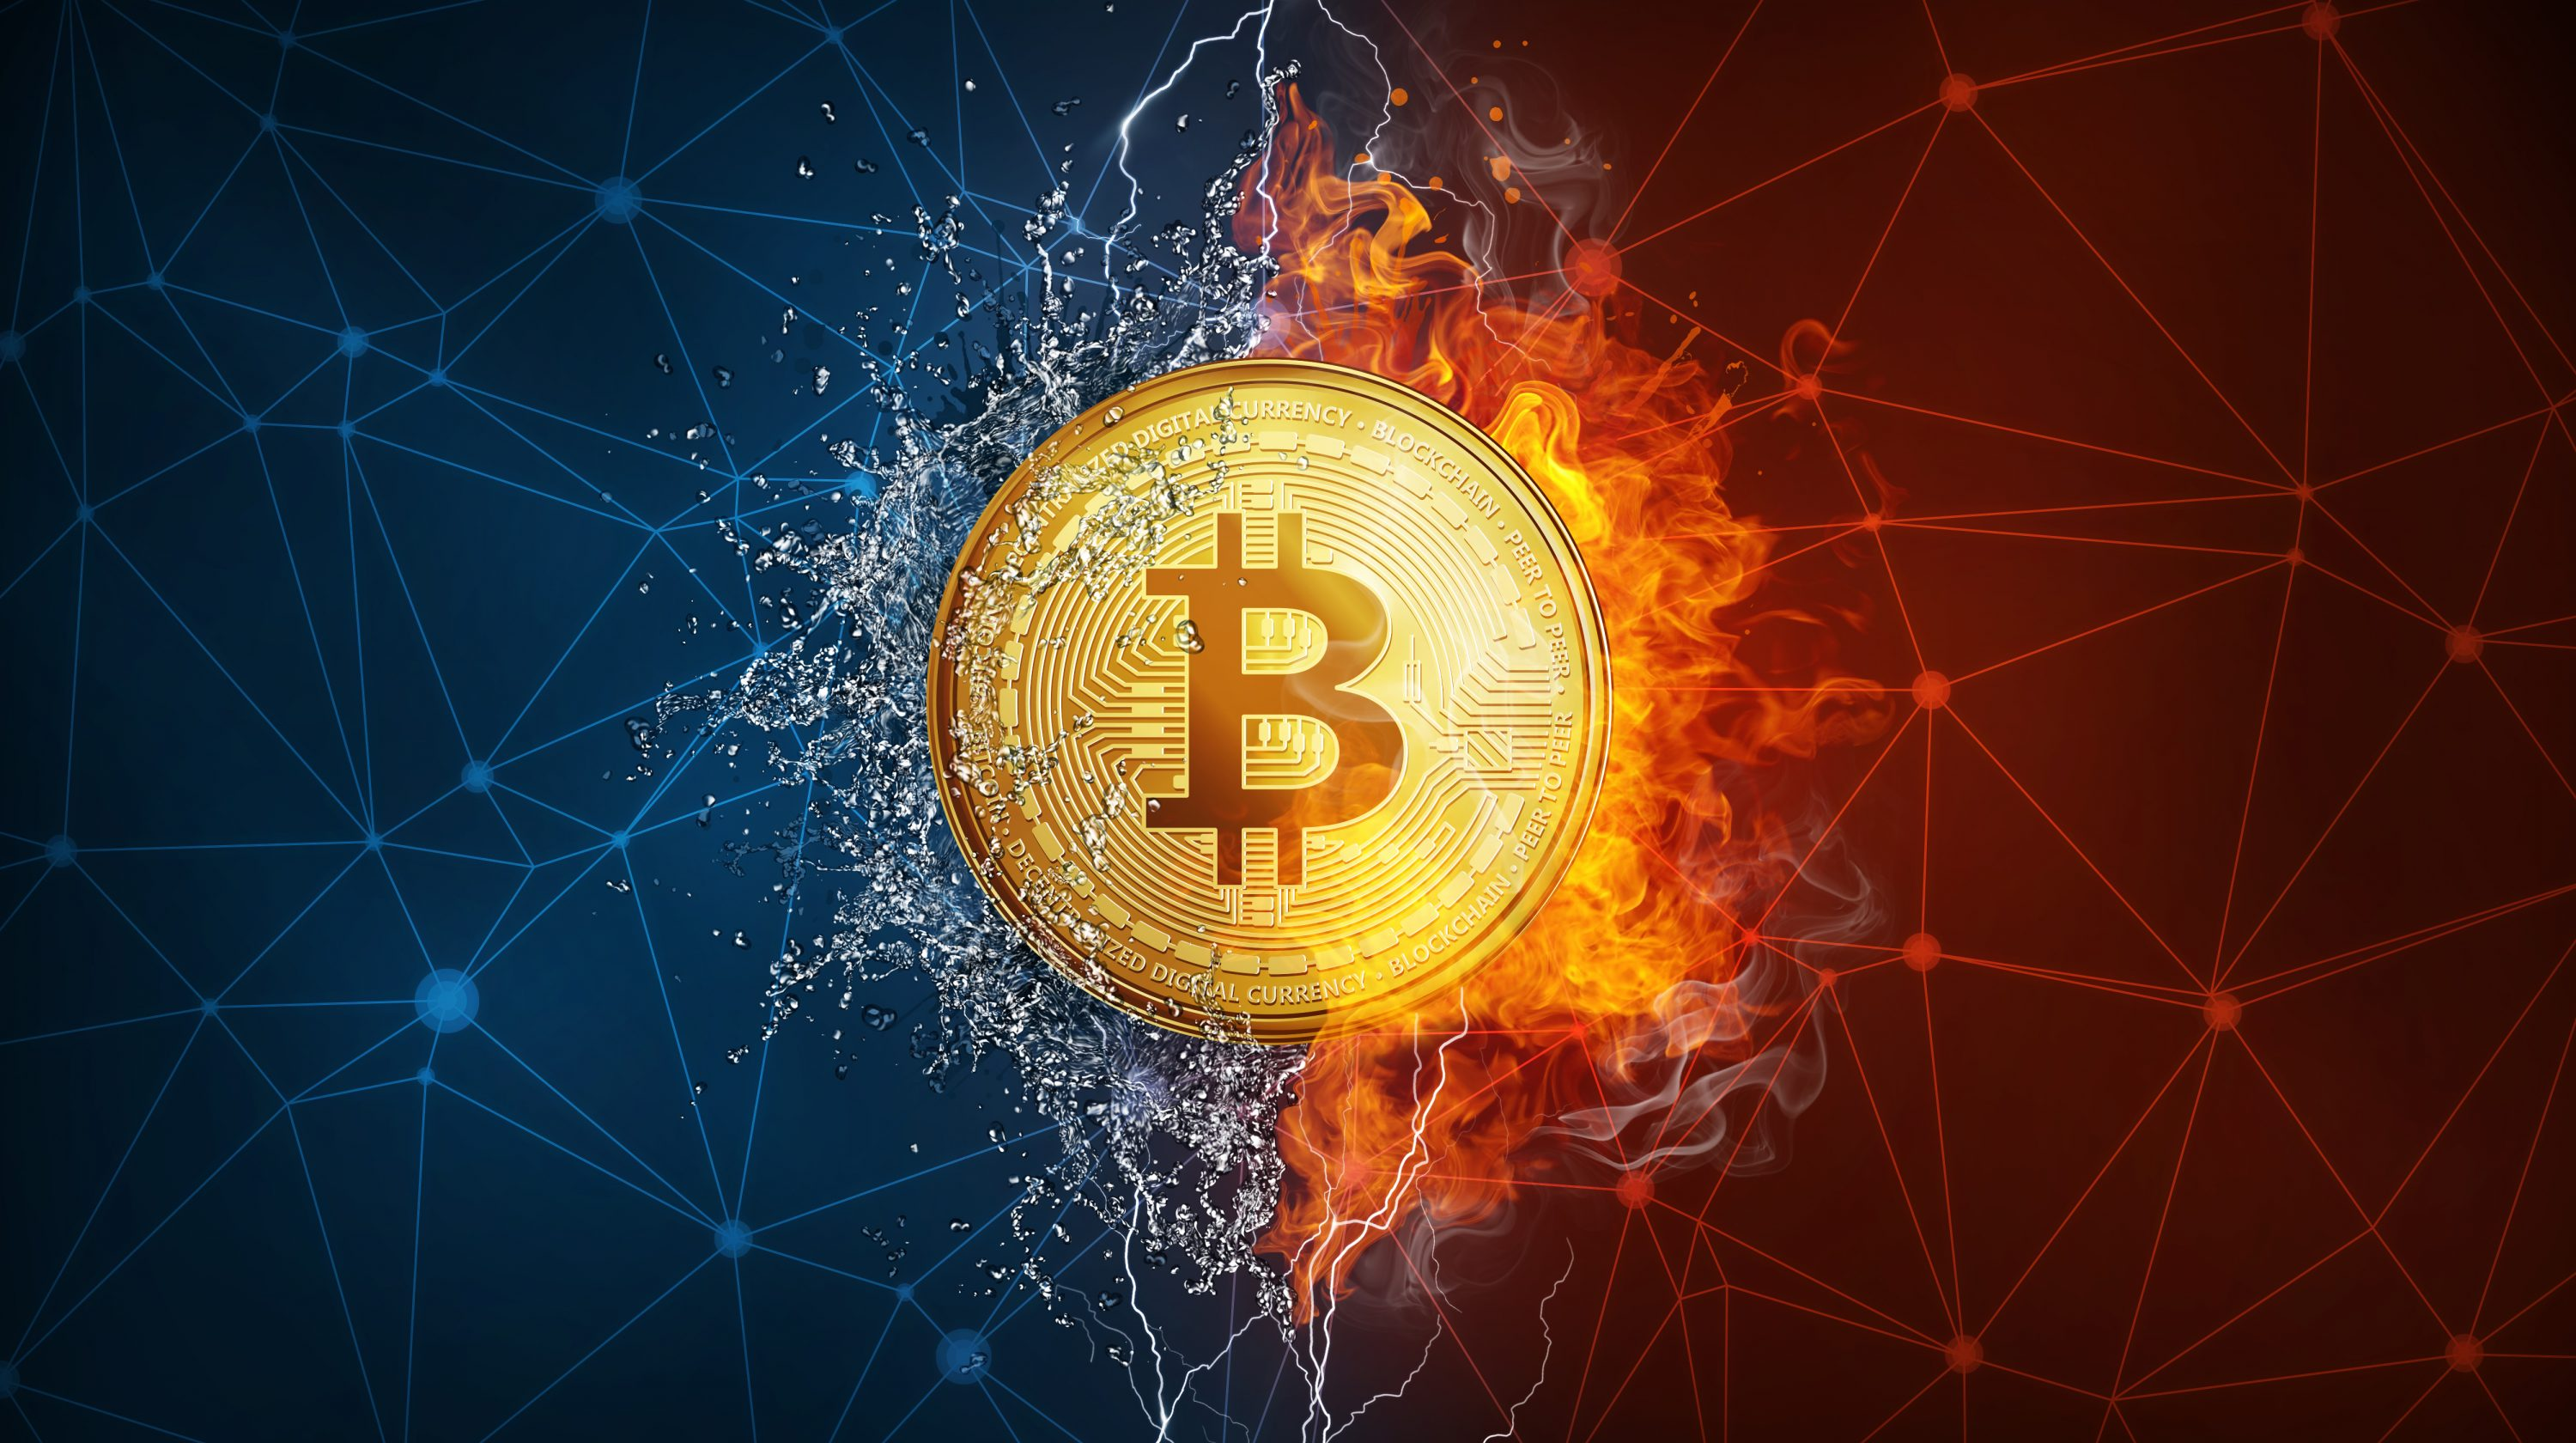 https steemit.com cryptocurrency bitcoinman why-you-should-invest-in-waves